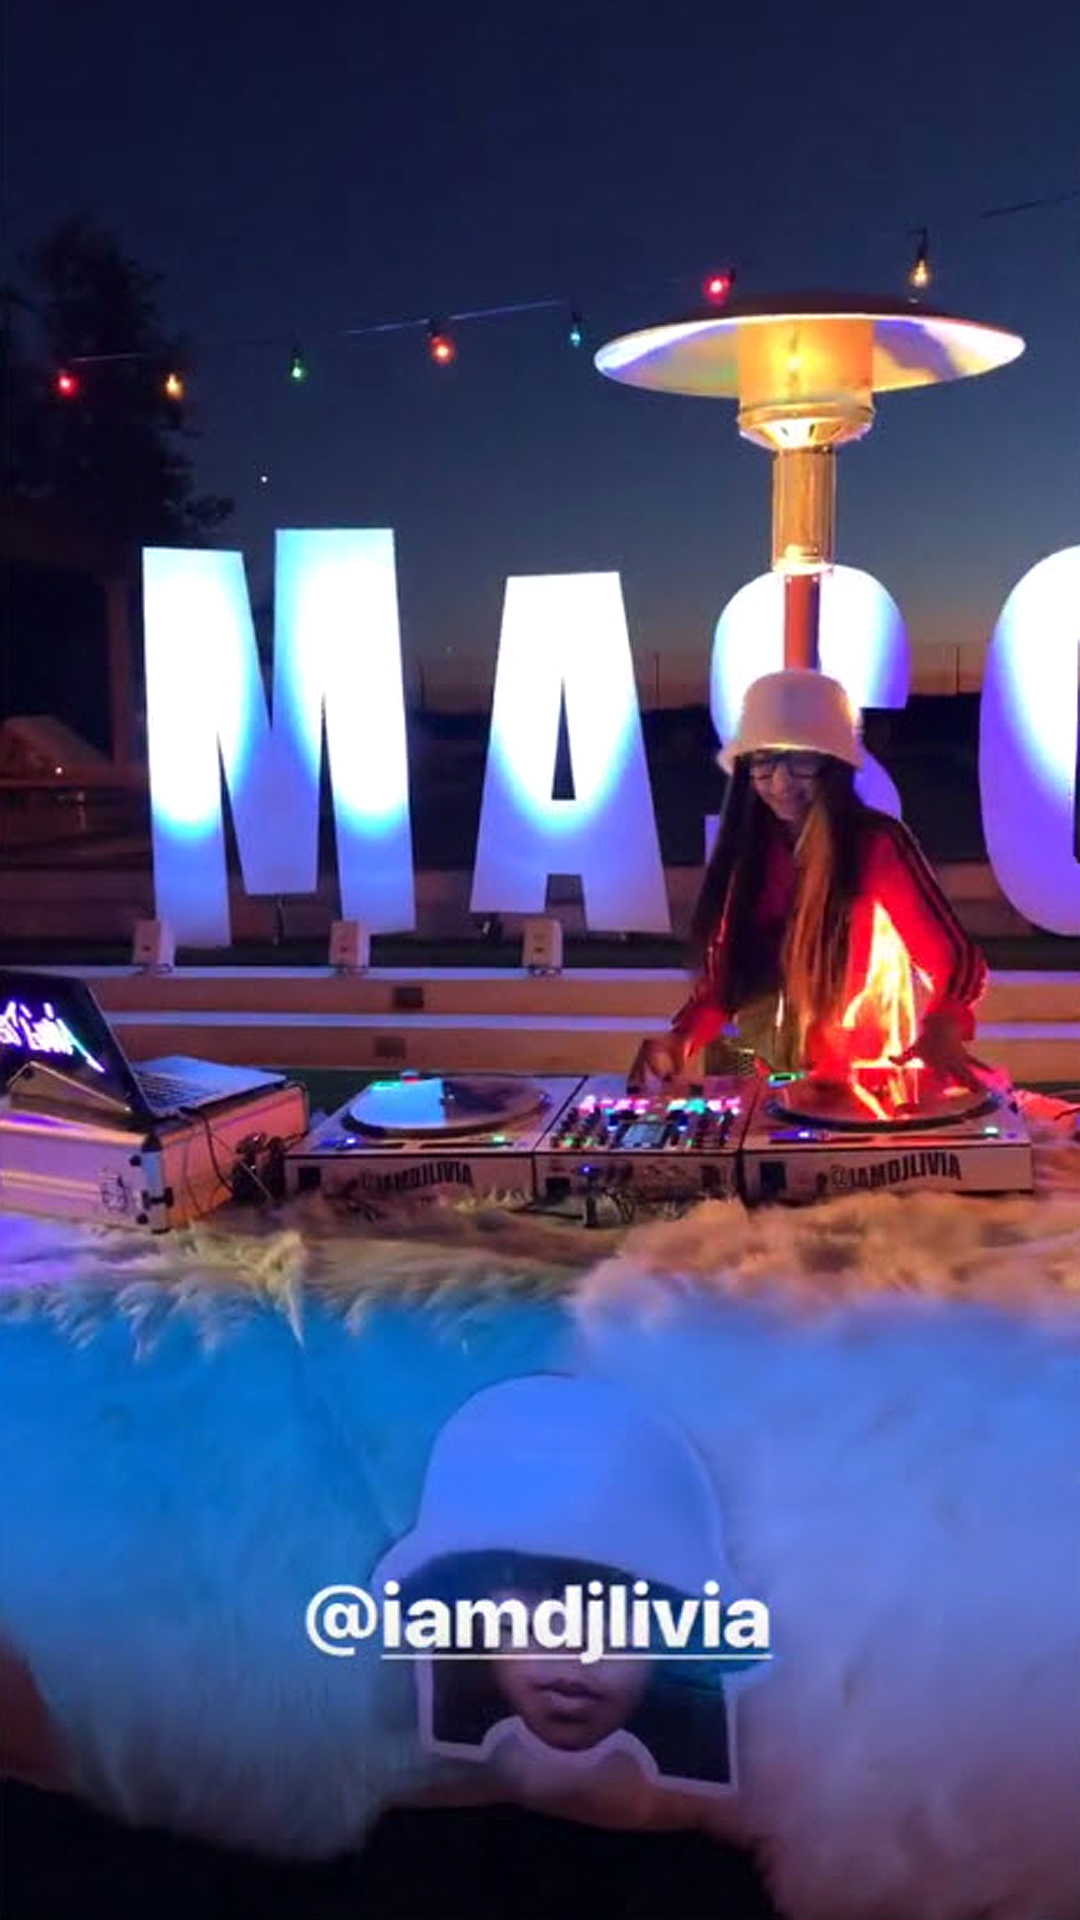 Kourtney Throws Sons a Fortnite-Themed Birthday Party - DJ Livia, 10-year-old viral sensation, was behind the turntables, providing tunes for the event.